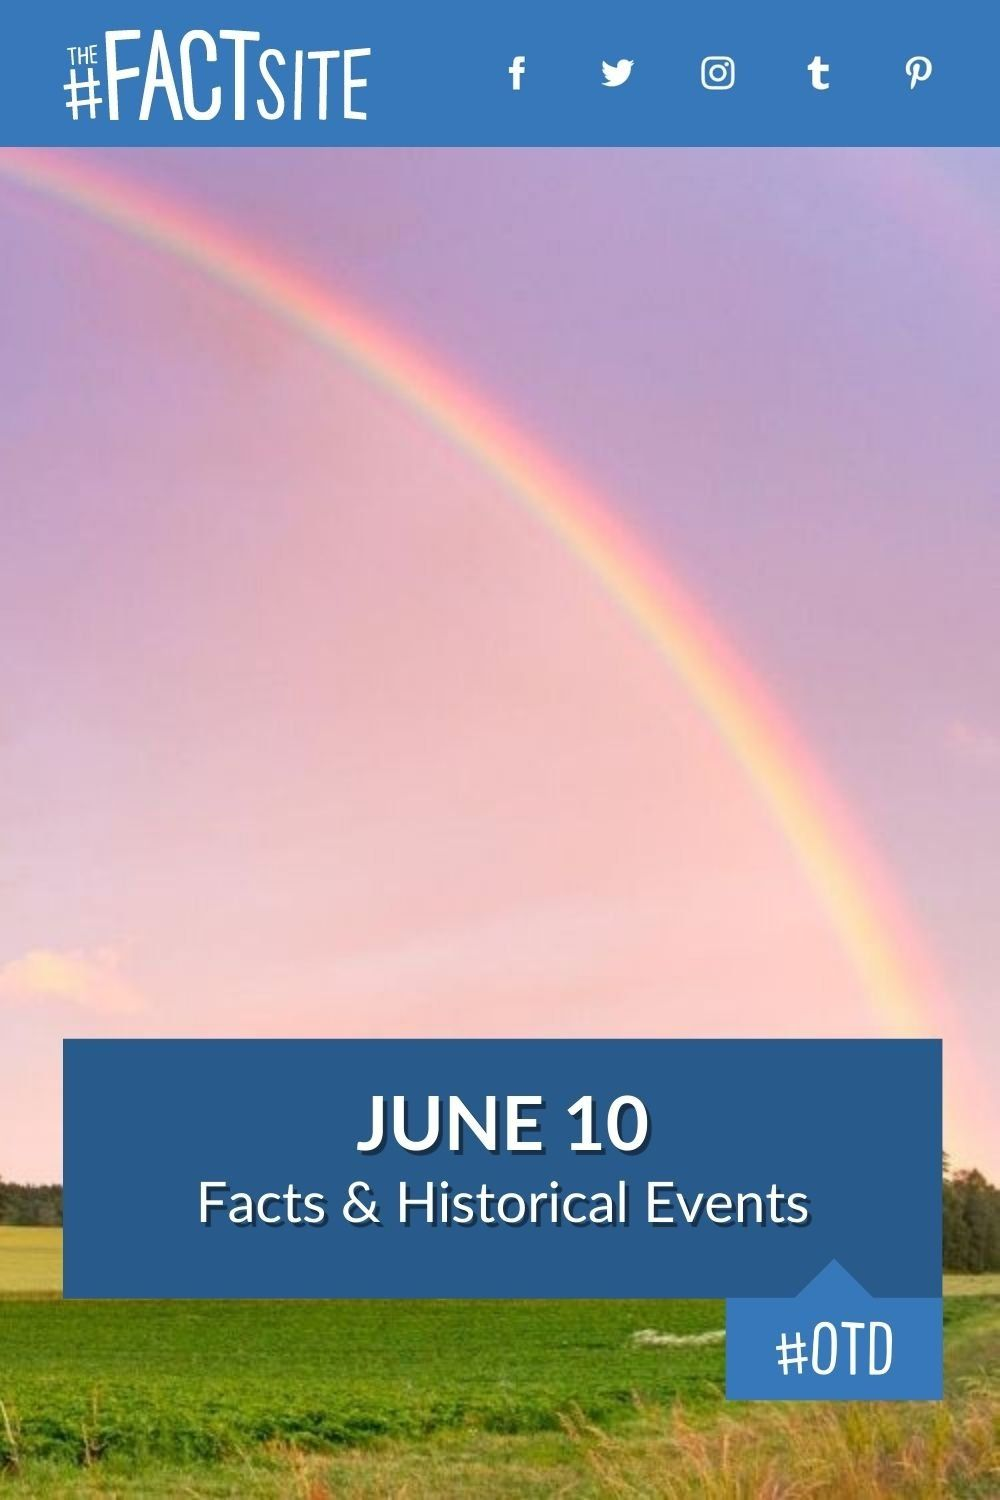 Facts & Historic Events That Happened on June 10